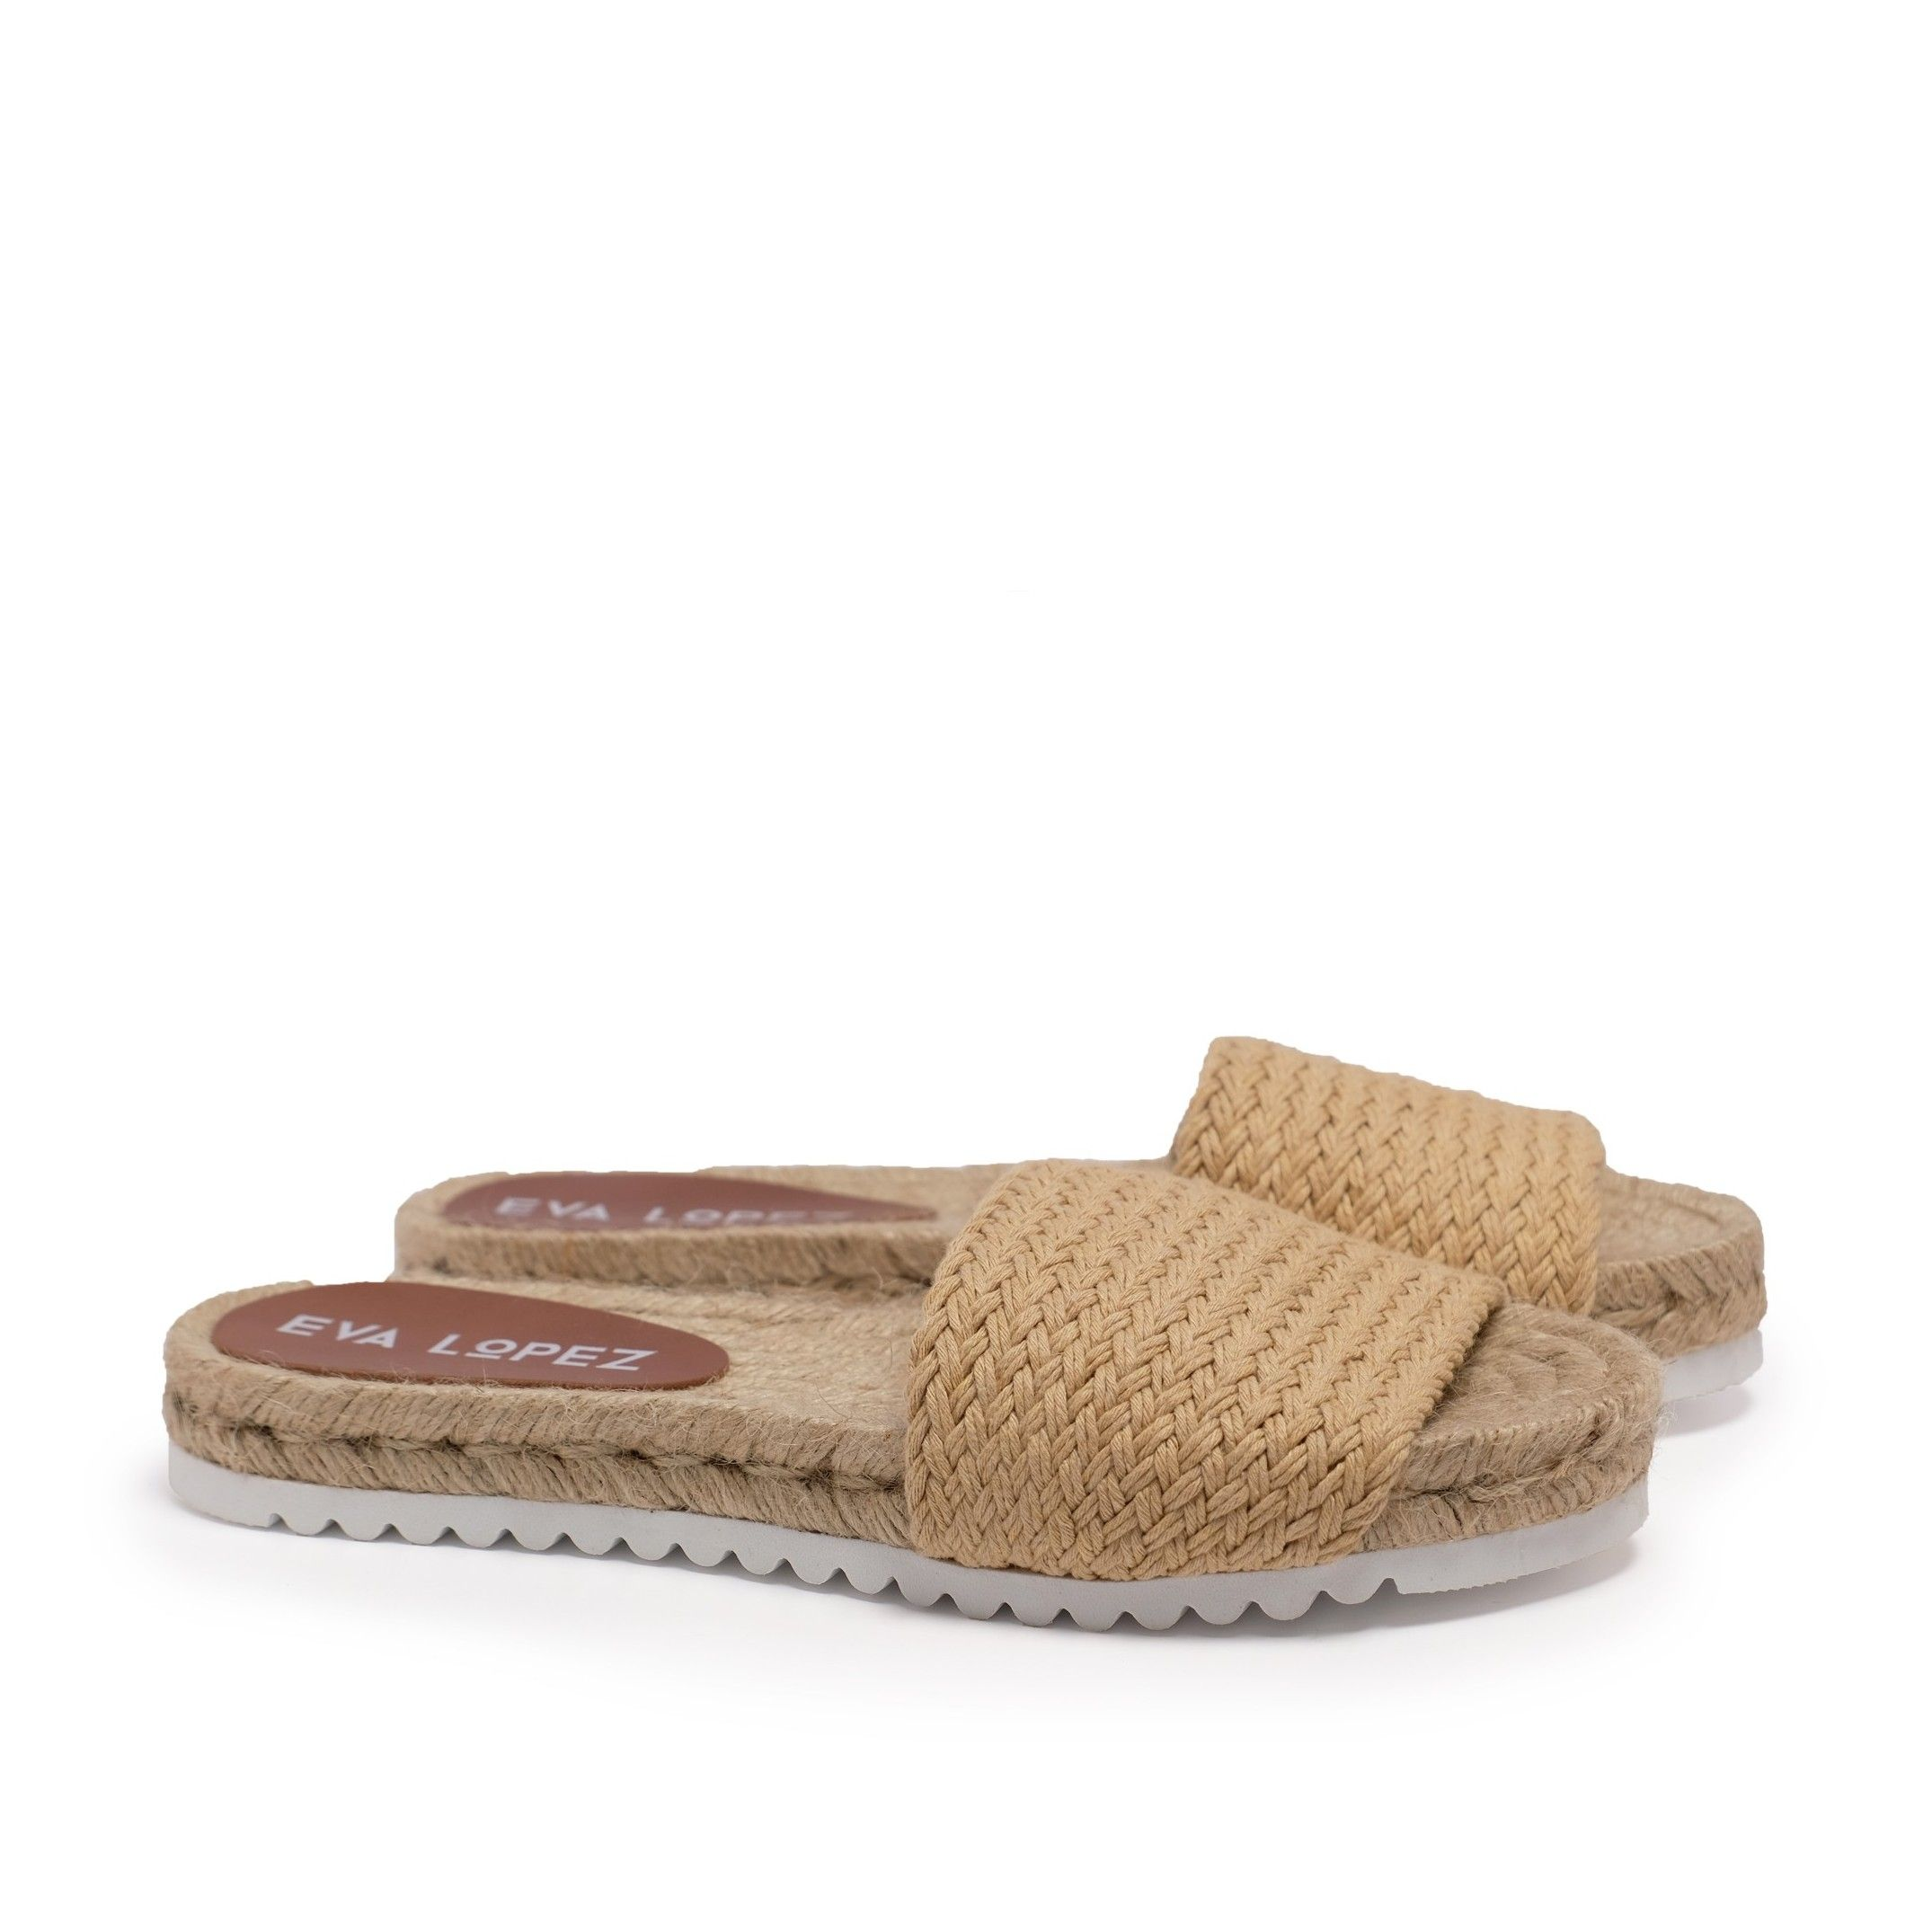 Flat Yute sandal for Women Camel Shoes. Eva Lopez